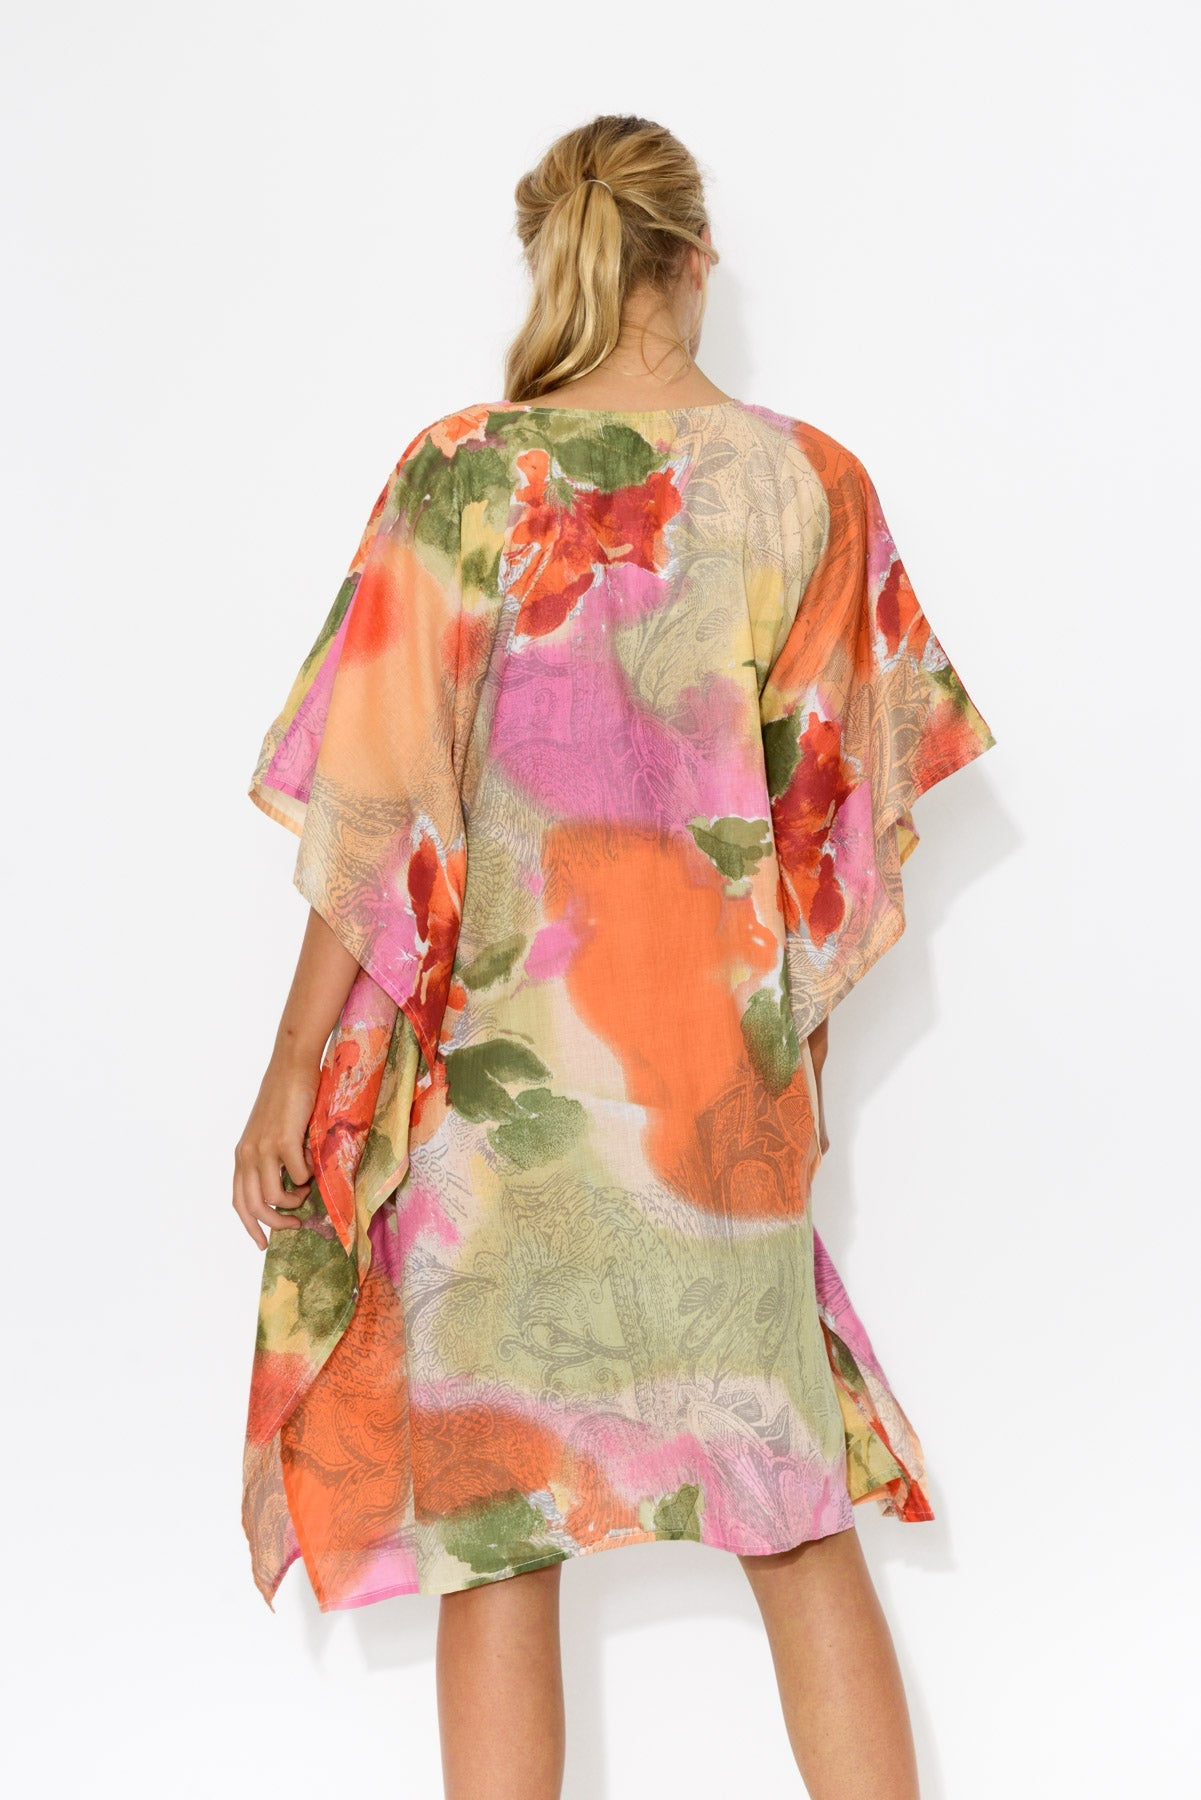 Bedarra Orange Peony Cotton Kaftan - Mozaic - Blue Bungalow Online